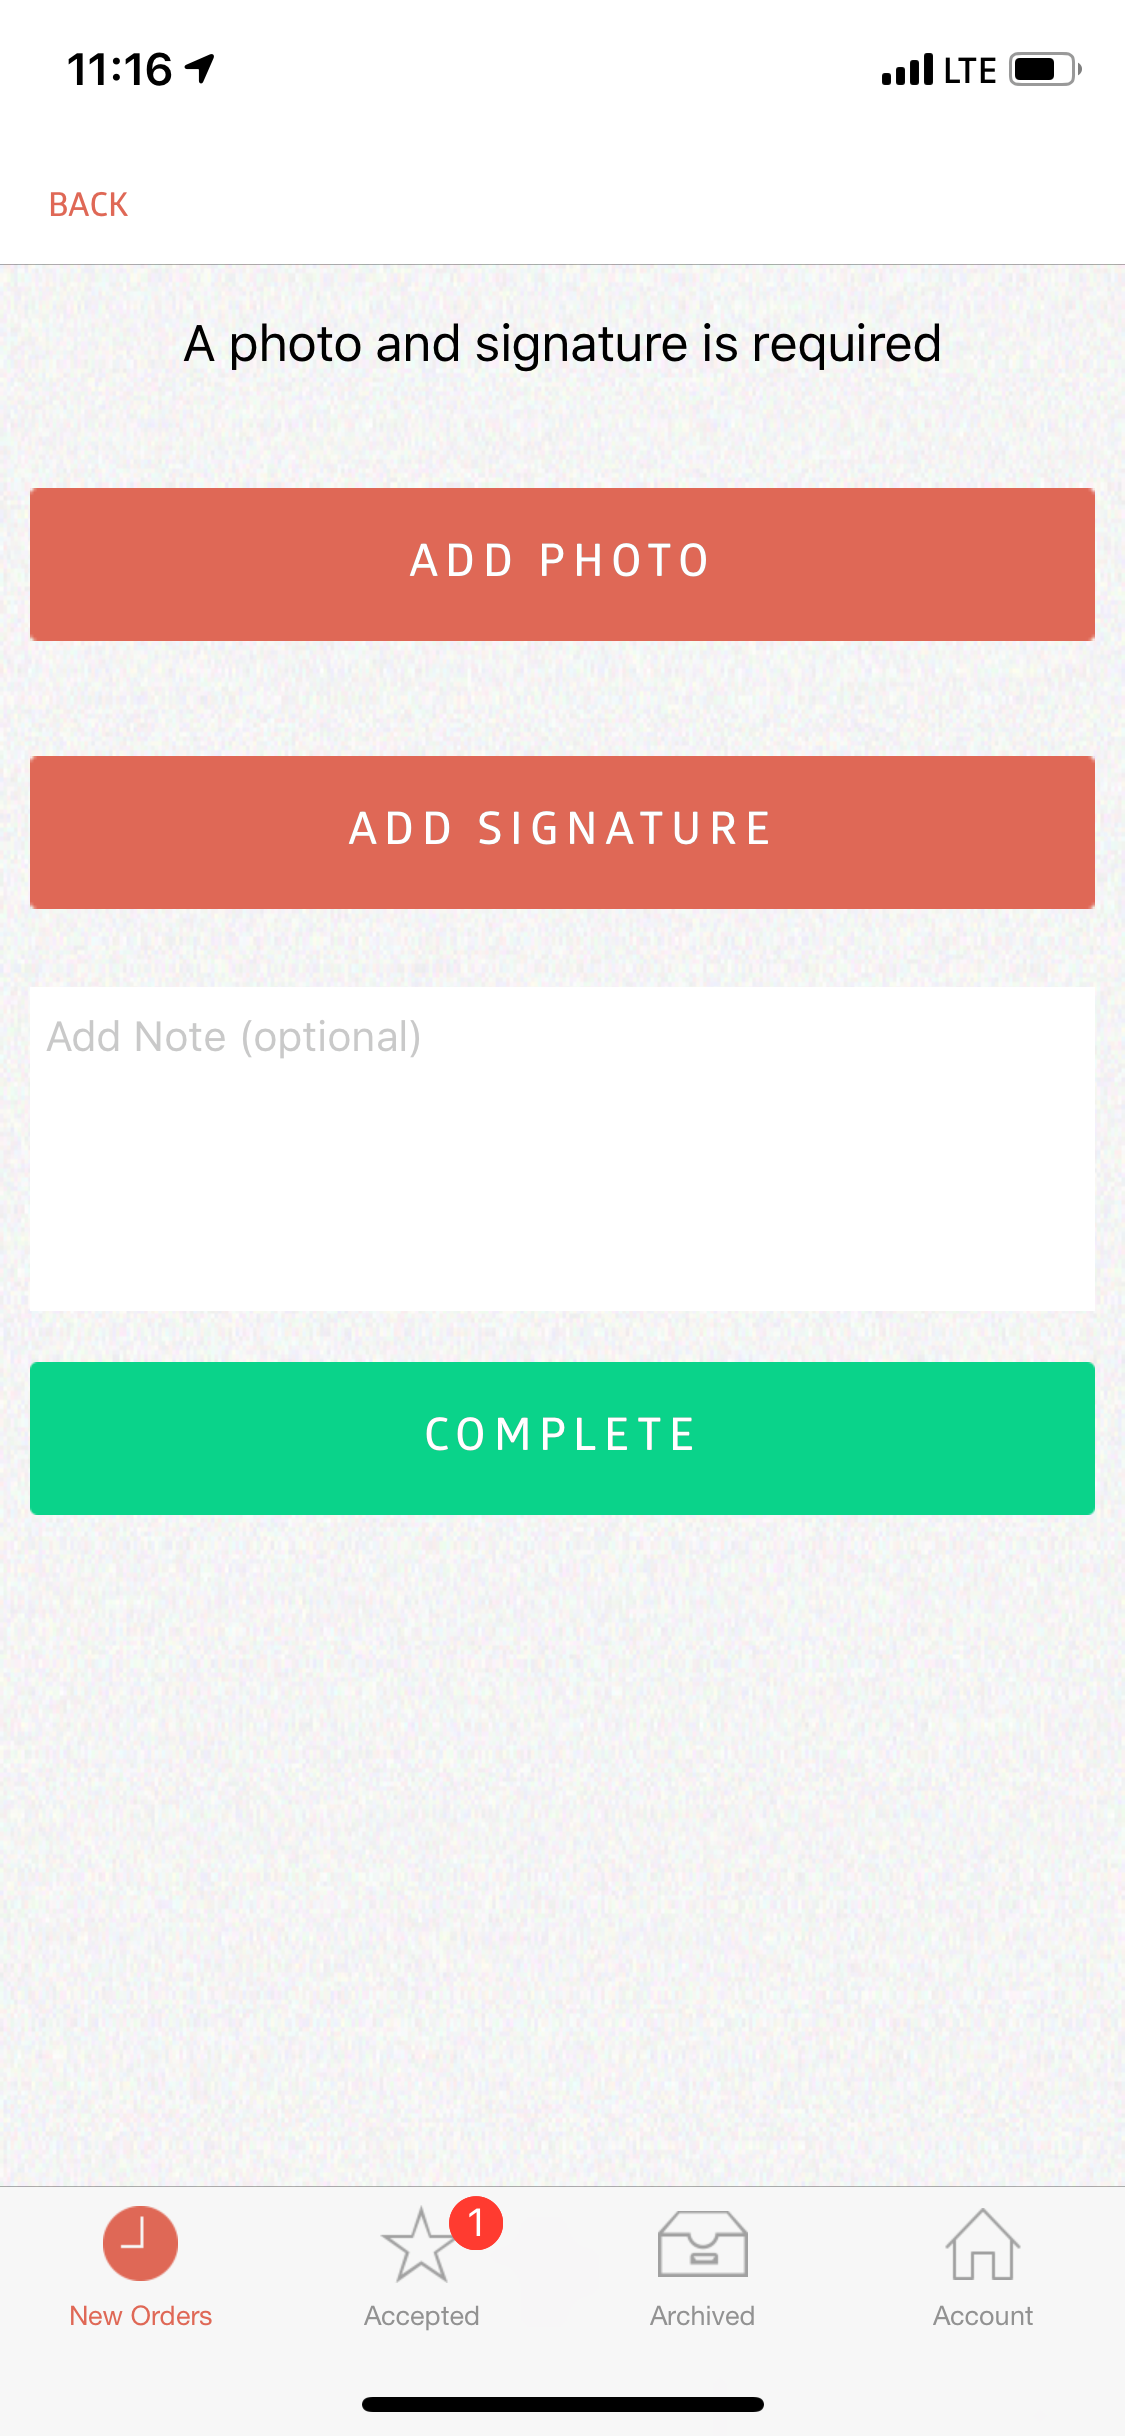 In this example, a Photo AND Signature is required before you can Complete the job